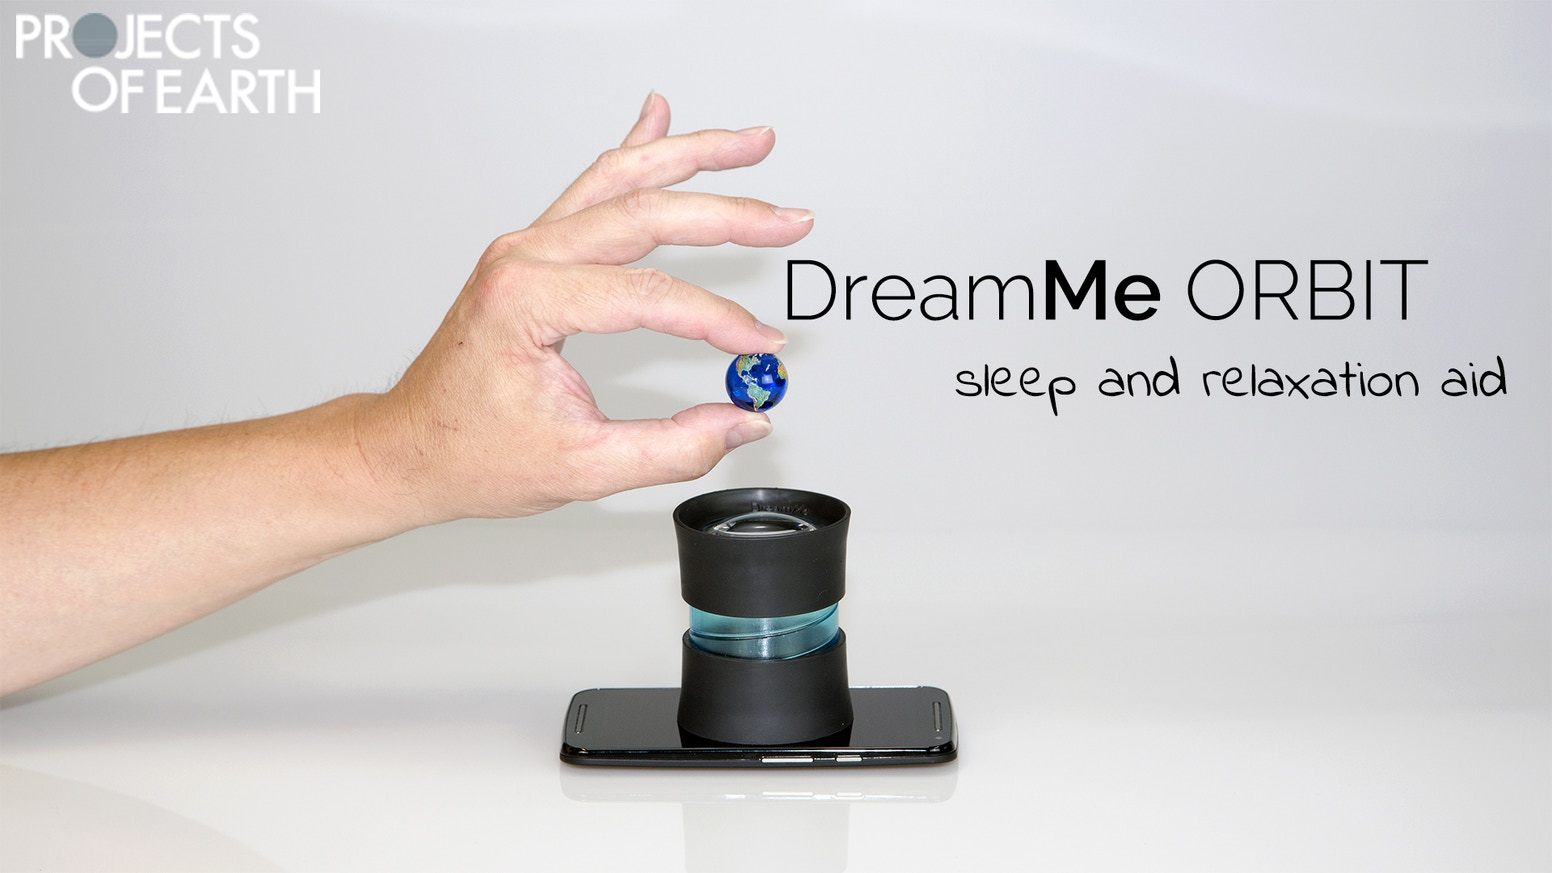 Projects of Earth: DreamMe ORBIT is the first sleep and relaxation aid, using your mobil phone as a projector - pocket planetarium.